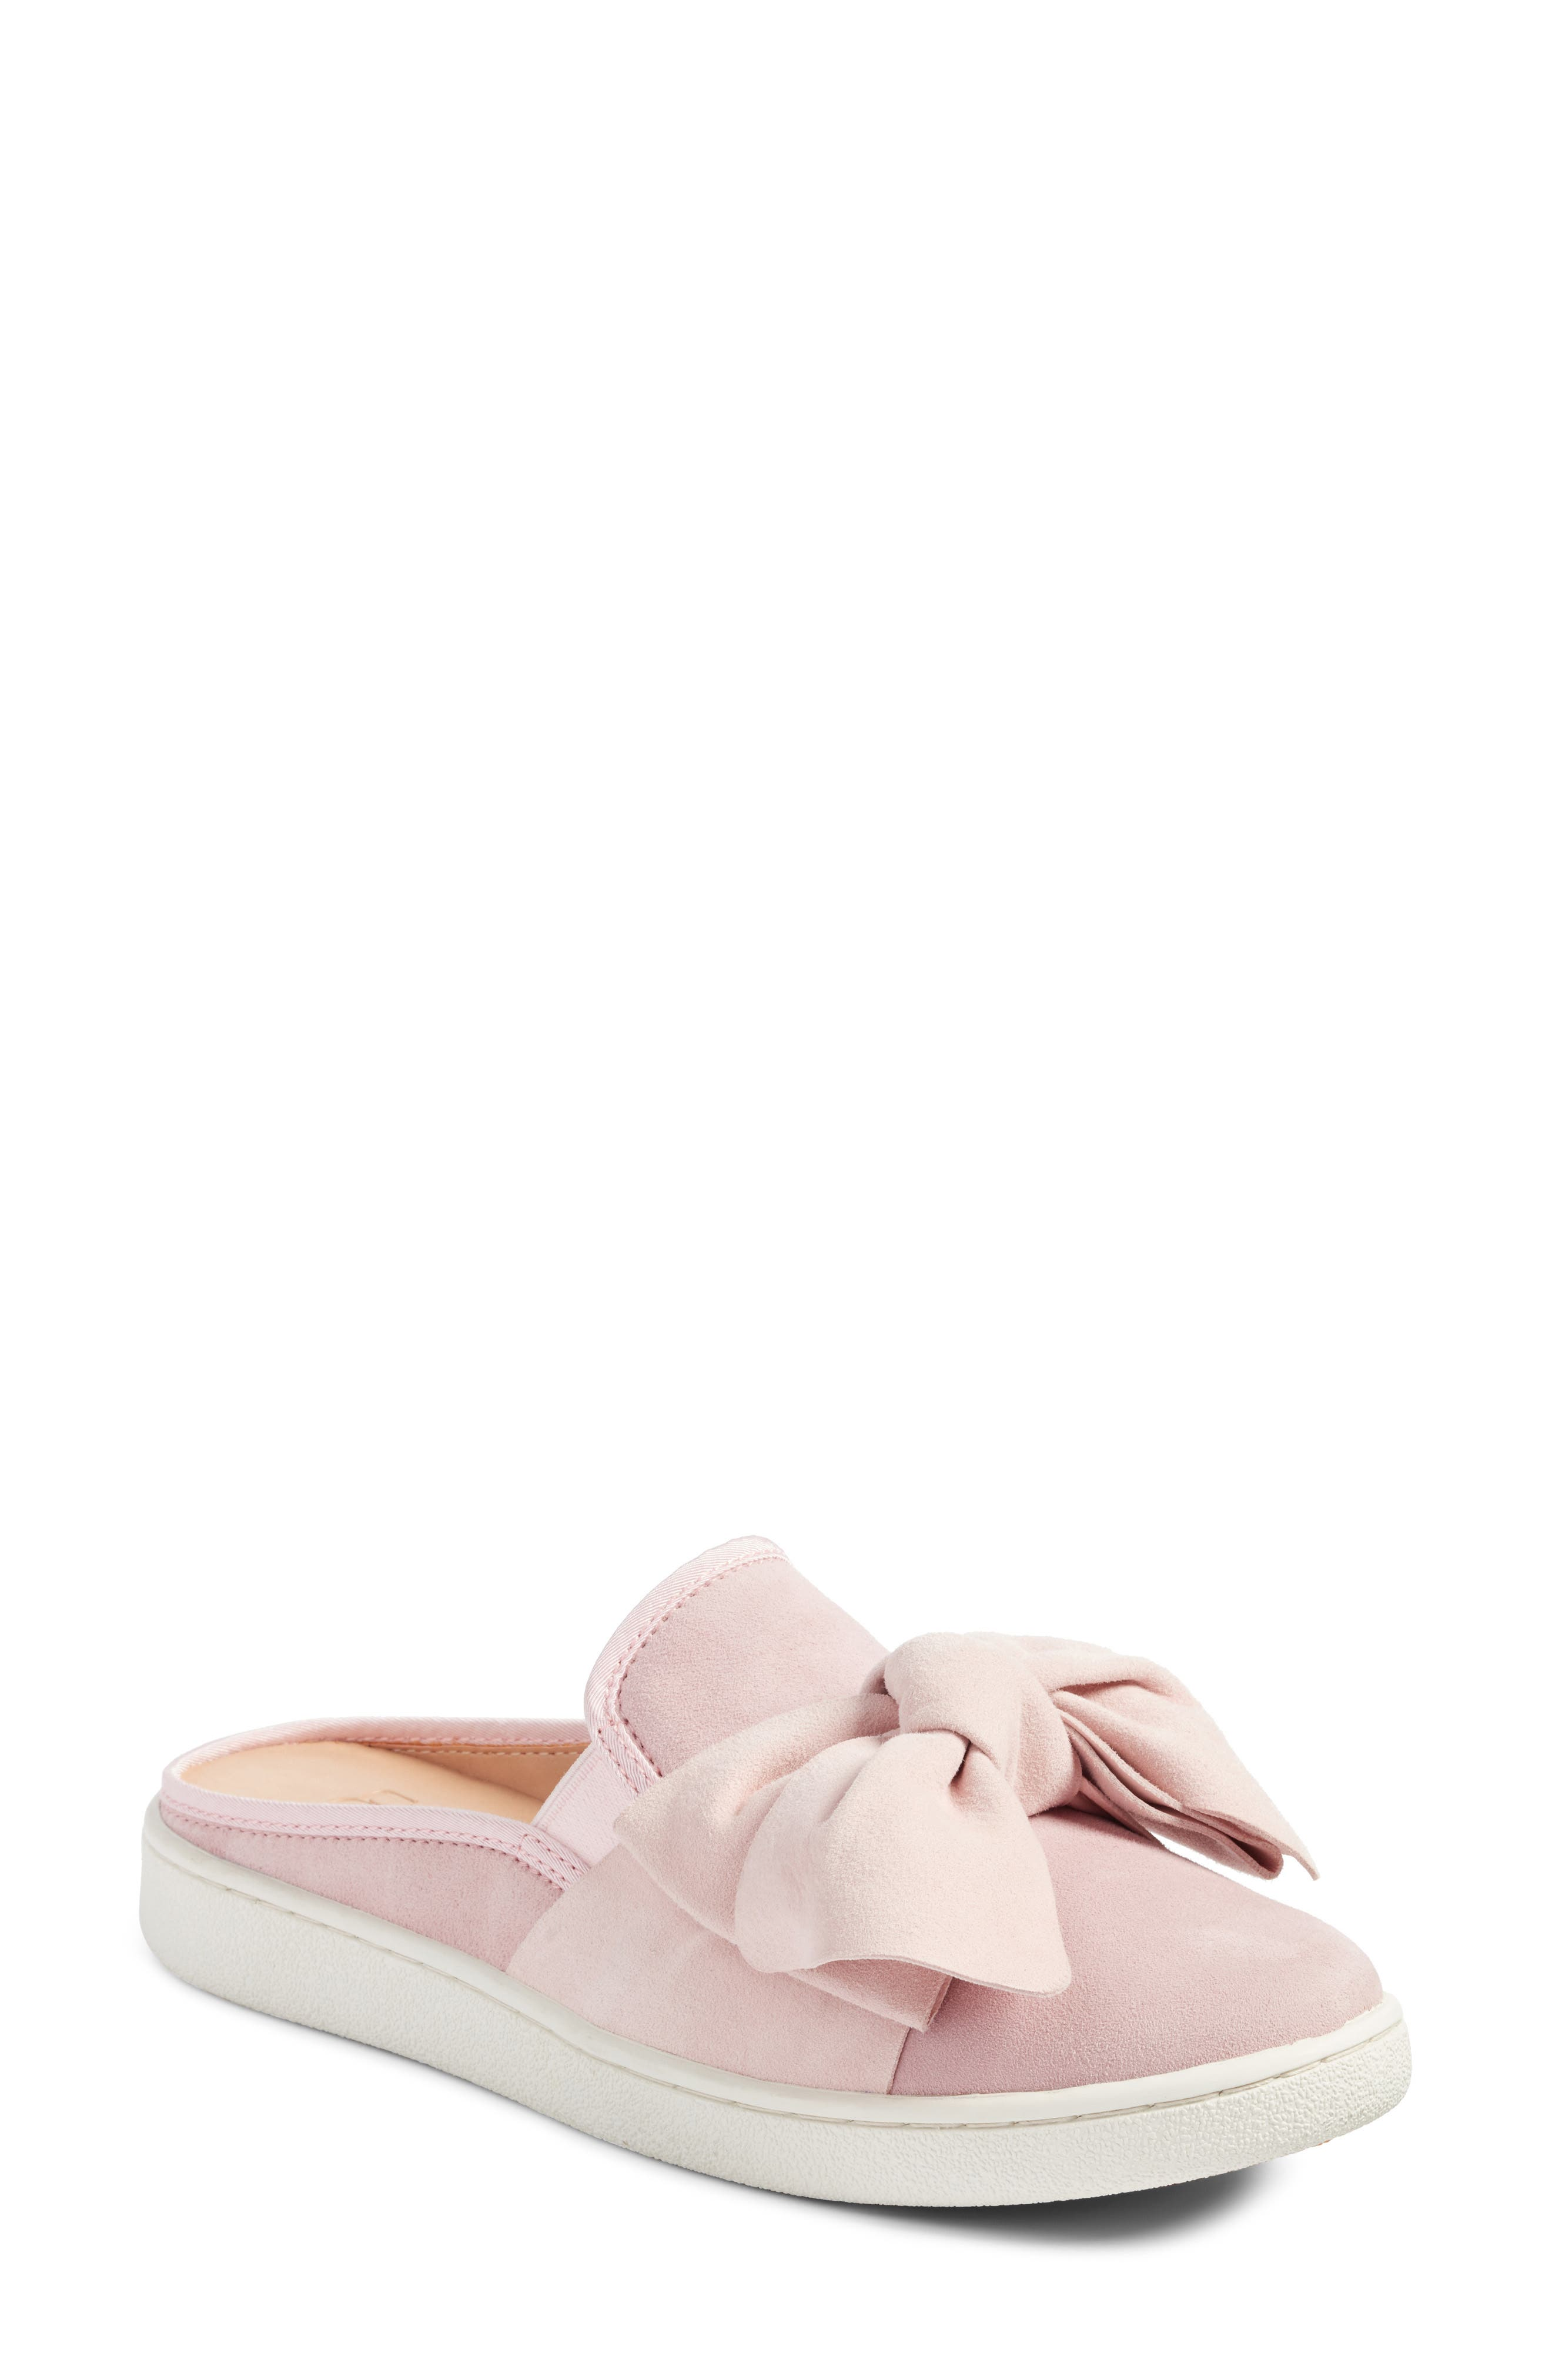 Luci Bow Sneaker Mule,                             Main thumbnail 1, color,                             Seashell Pink Suede